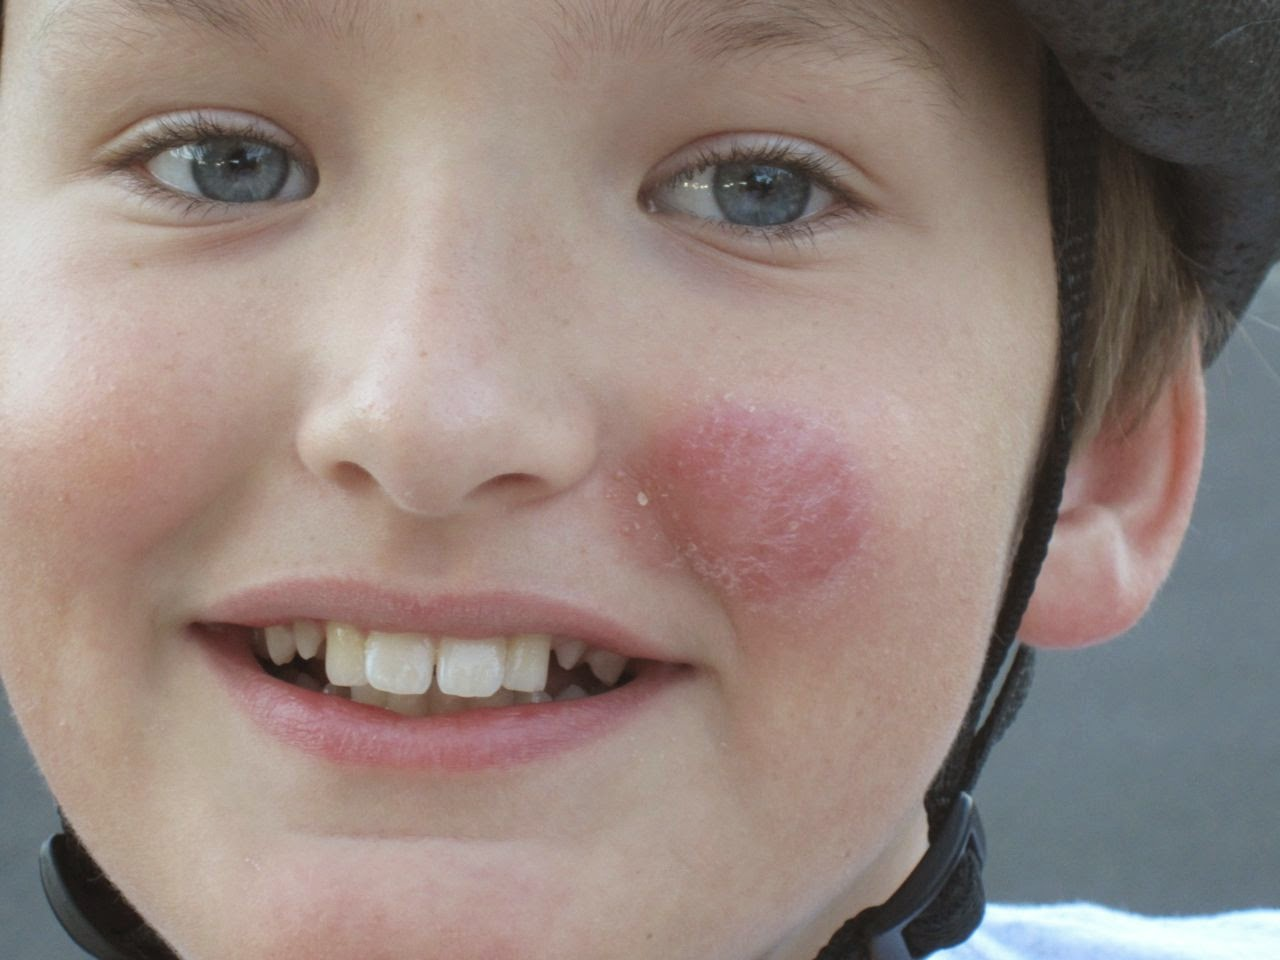 Pictures Of Ringworm On Face Pictures Photos